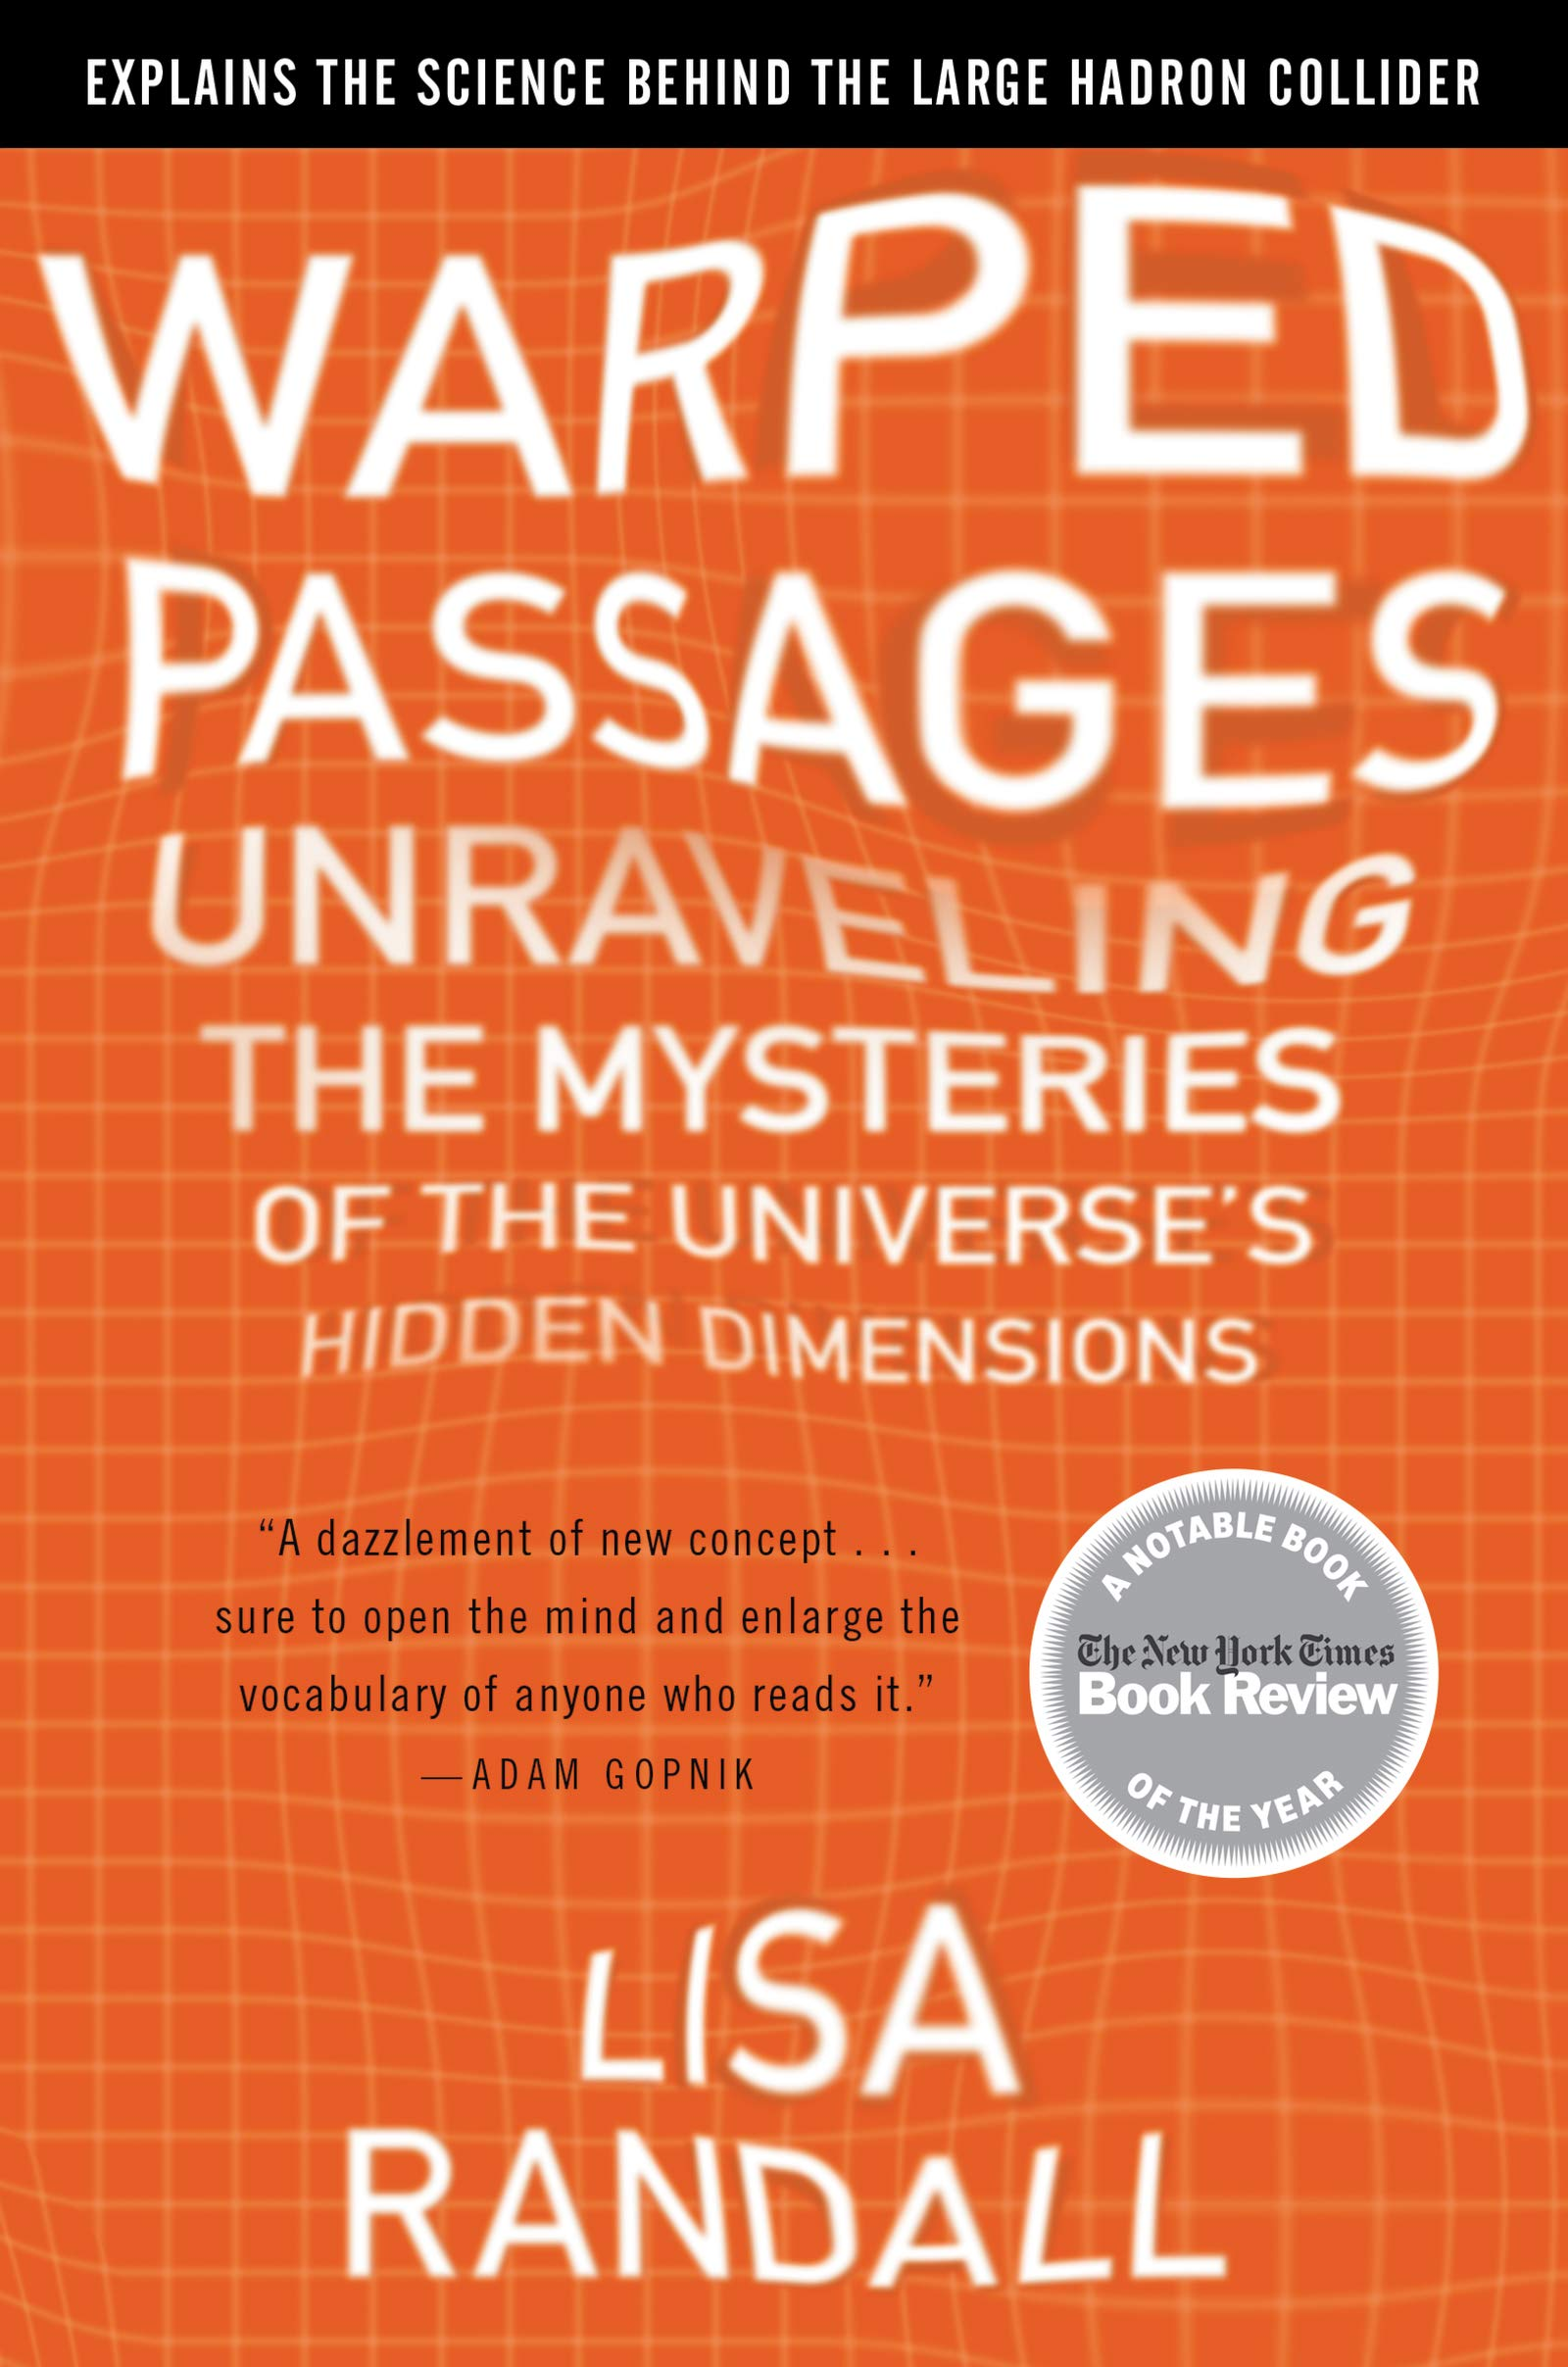 Warped Passages: Unraveling the Mysteries of the Universes Hidden Dimensions: Amazon.es: Lisa Randall: Libros en idiomas extranjeros